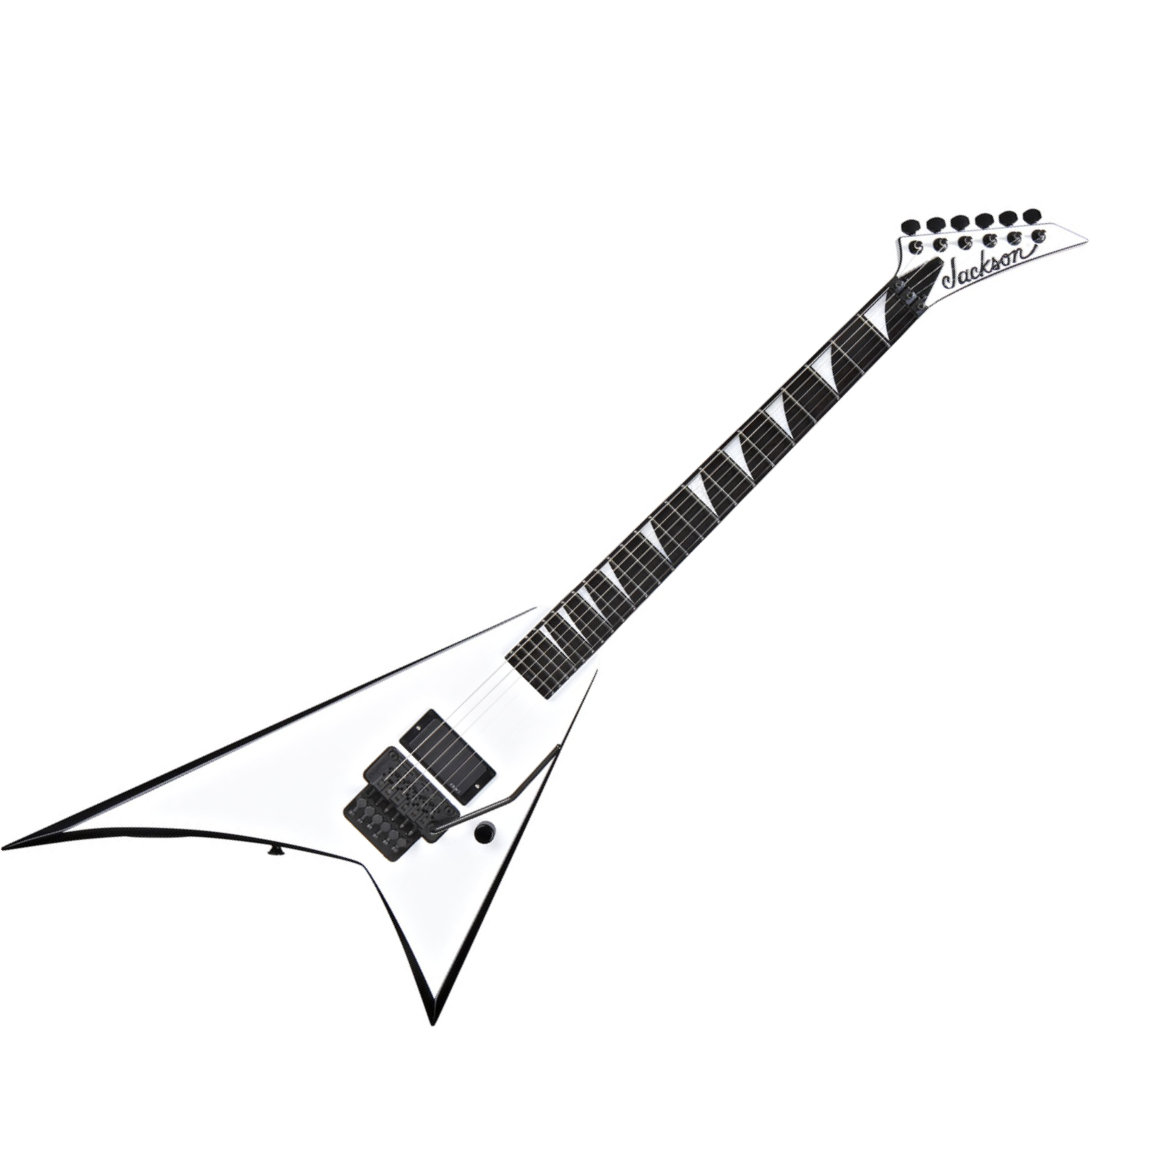 Shredpowerextreme Jackson Rr24 Randy Rhoads Pro Electric